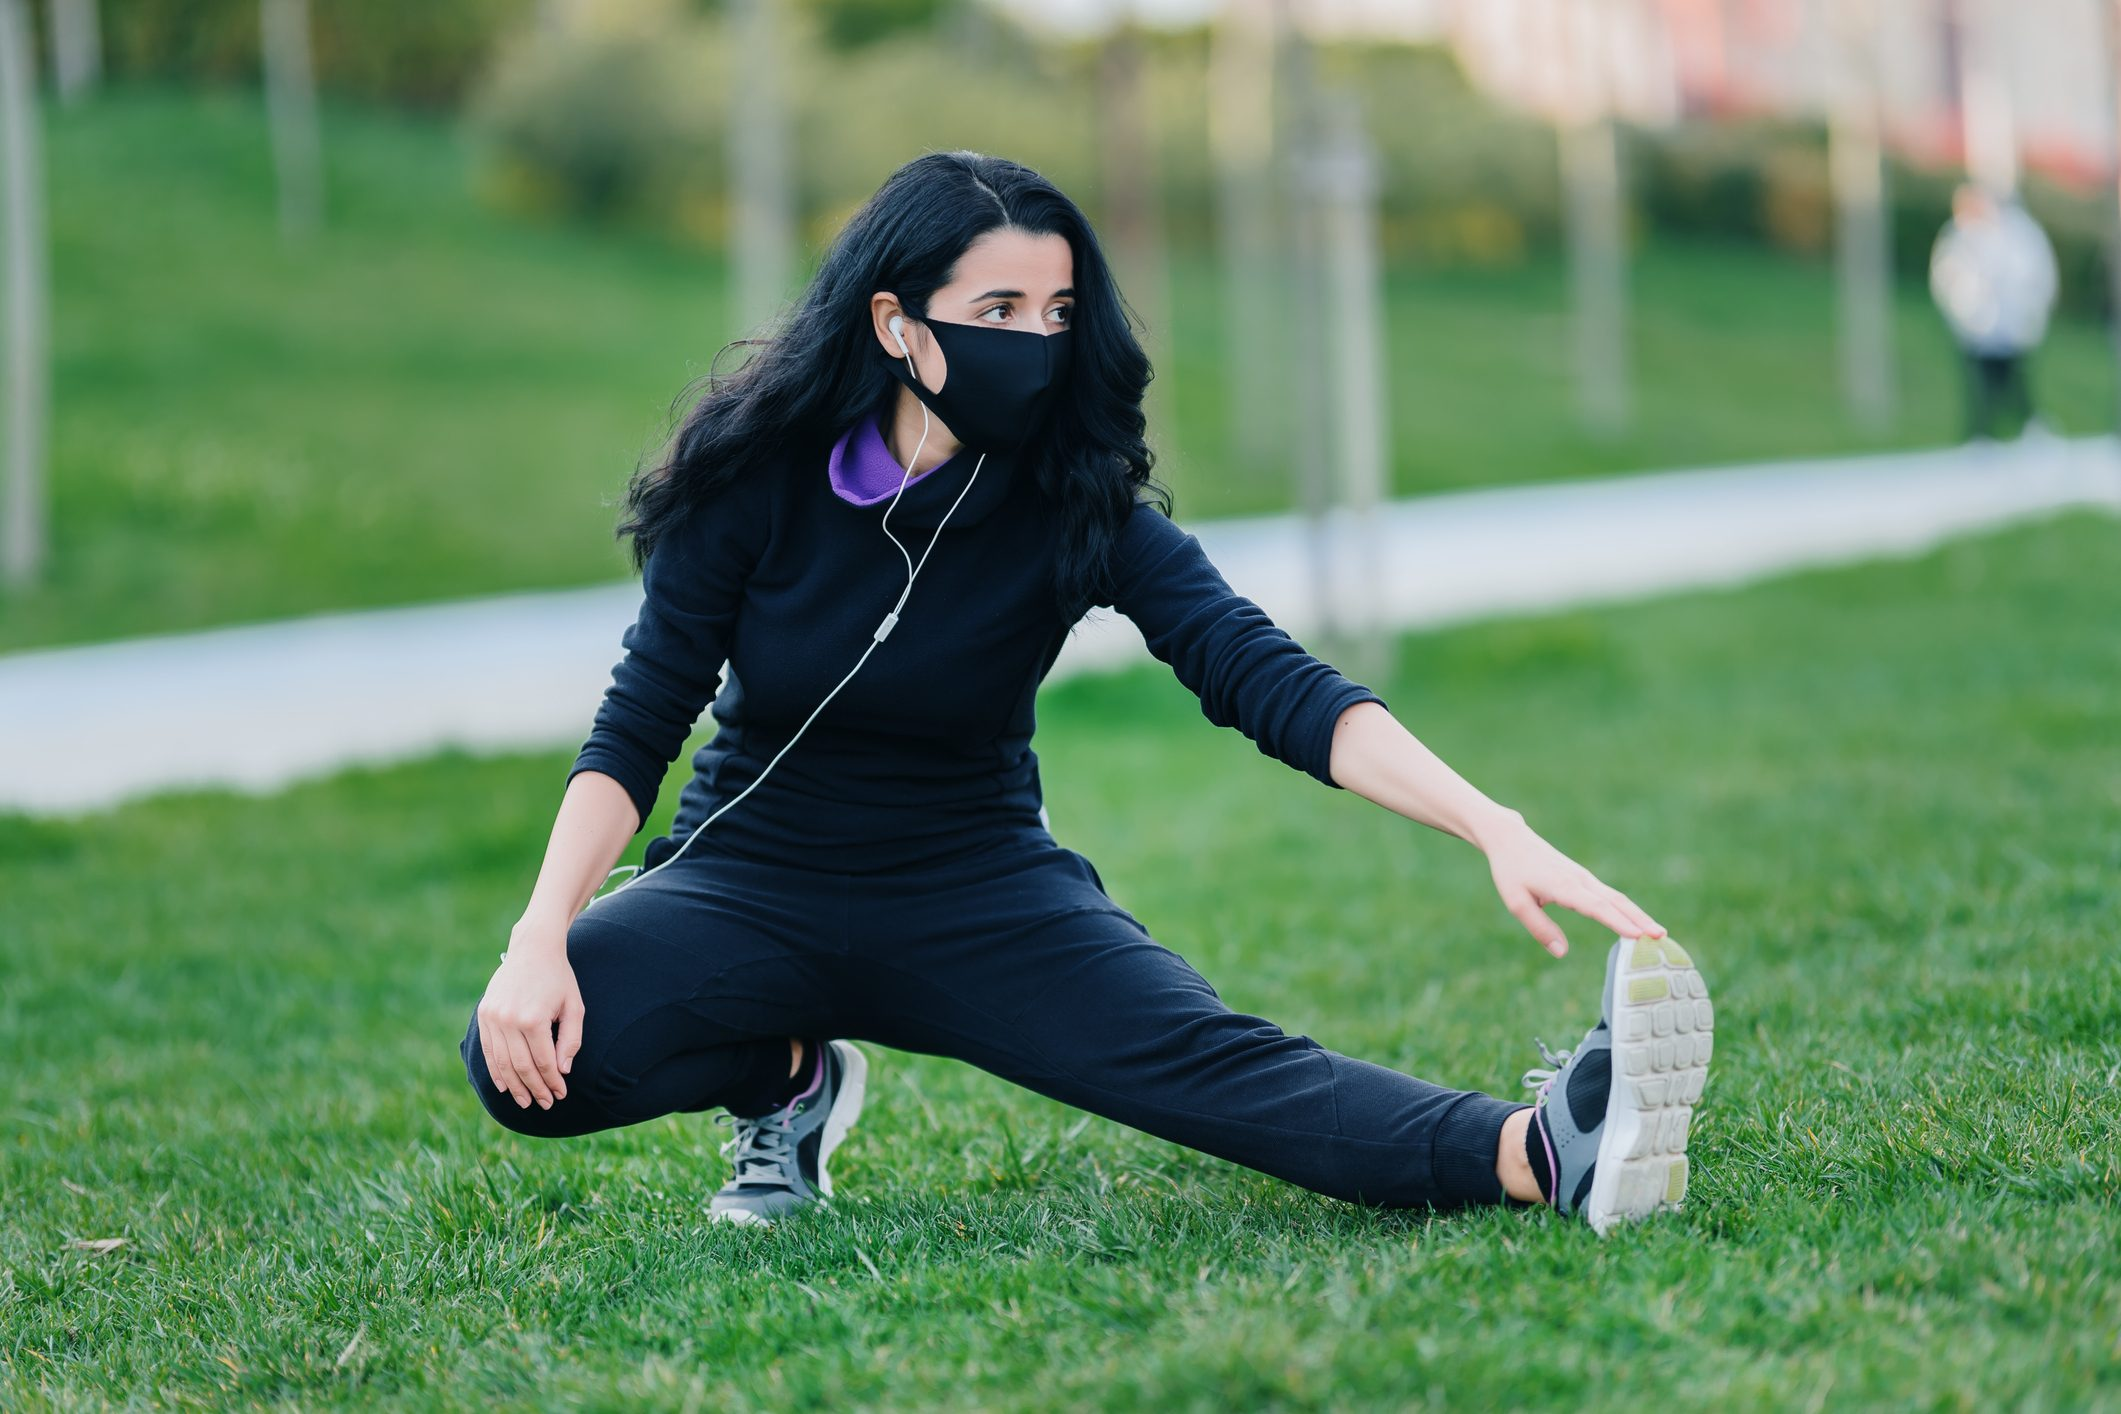 woman stretching before work out and wearing face mask protection